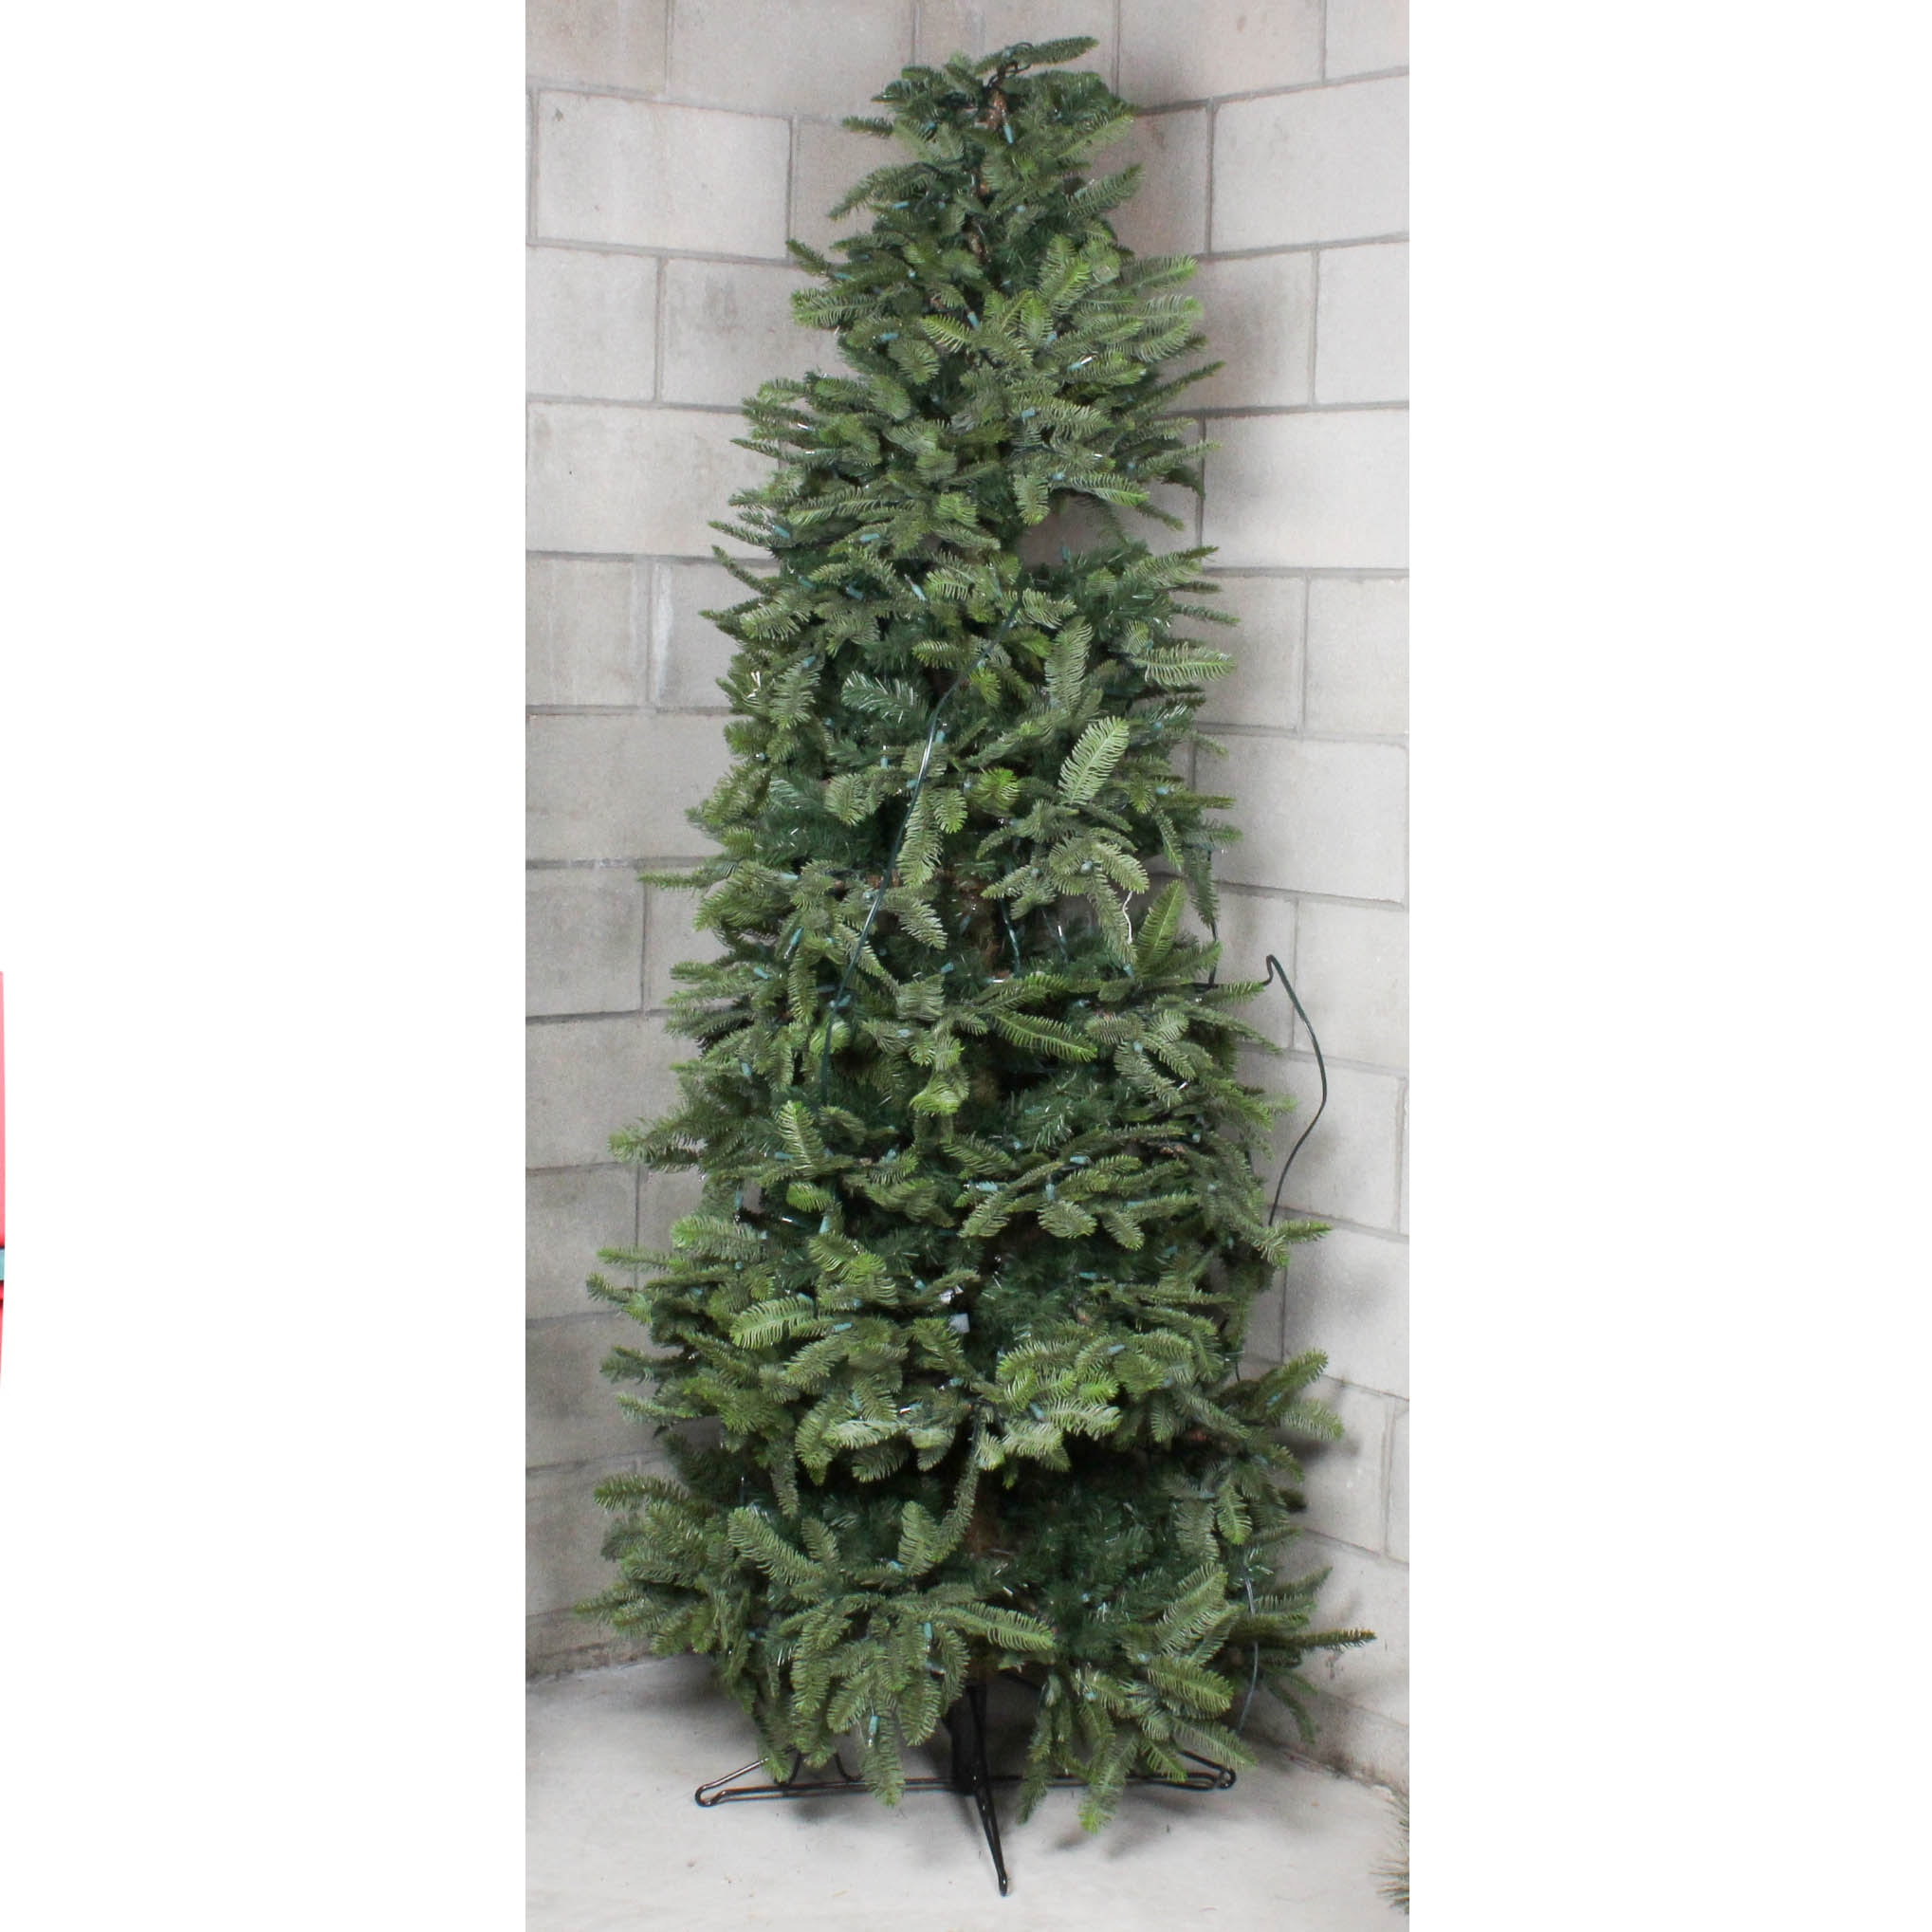 Frontgate 7' Faux Christmas Tree